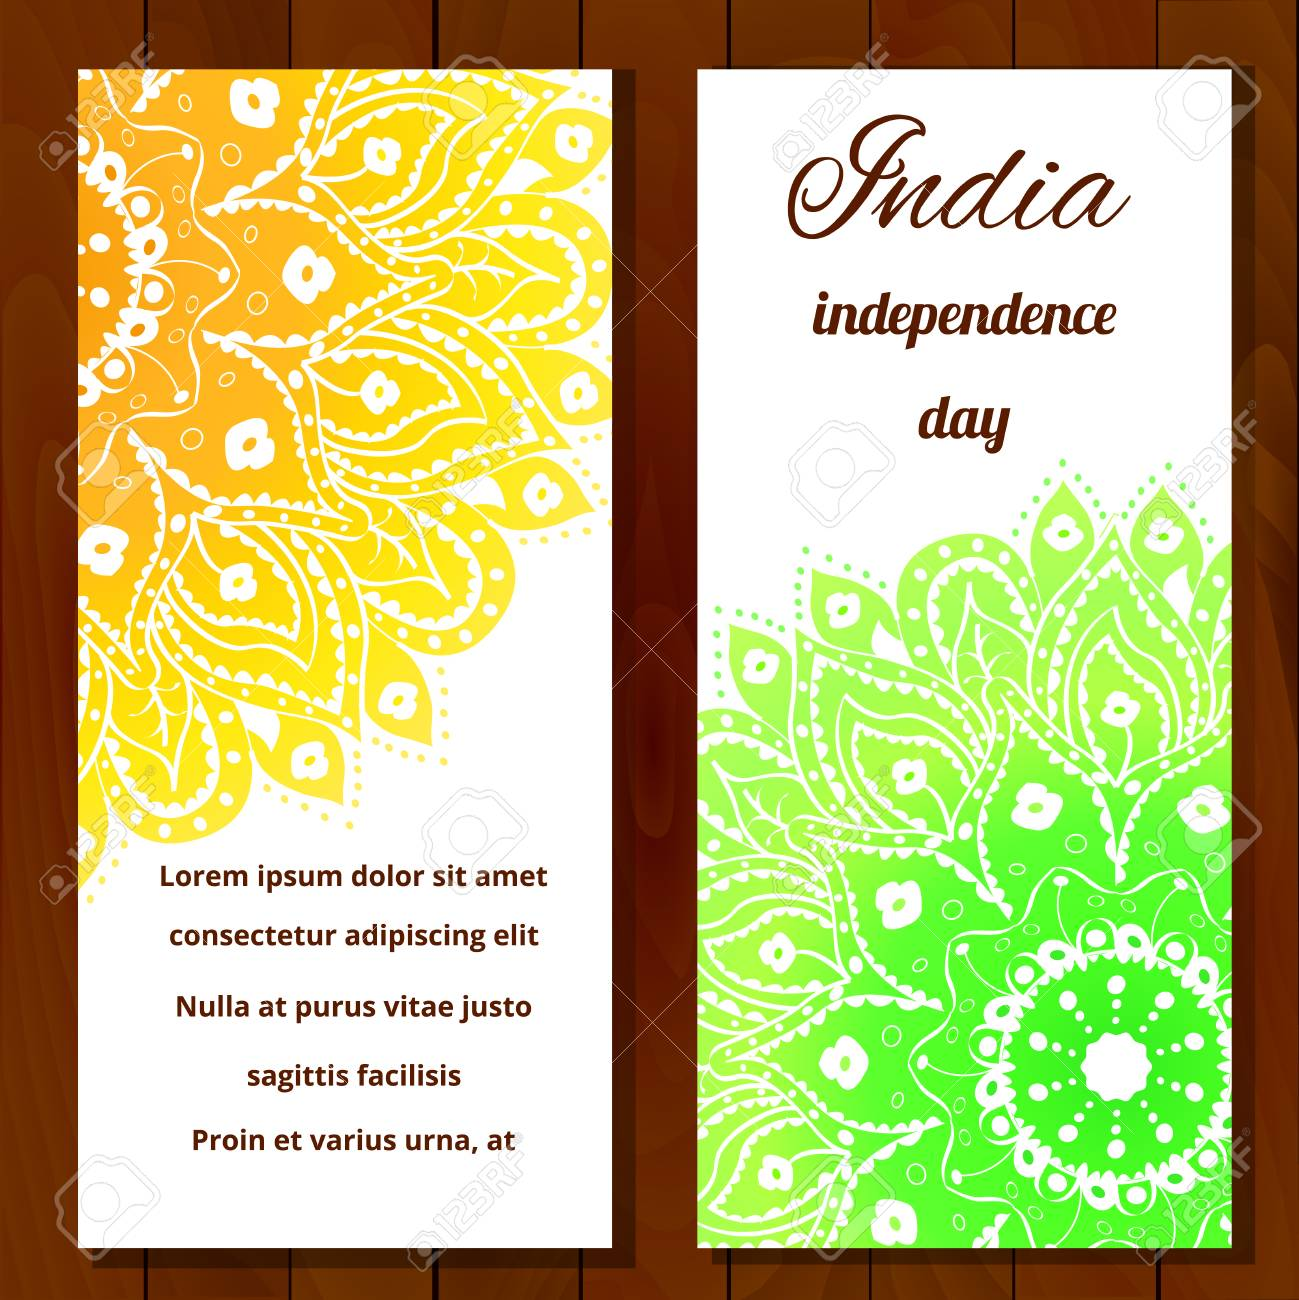 Vector Illustration For The India Independence Day 2 White Greeting